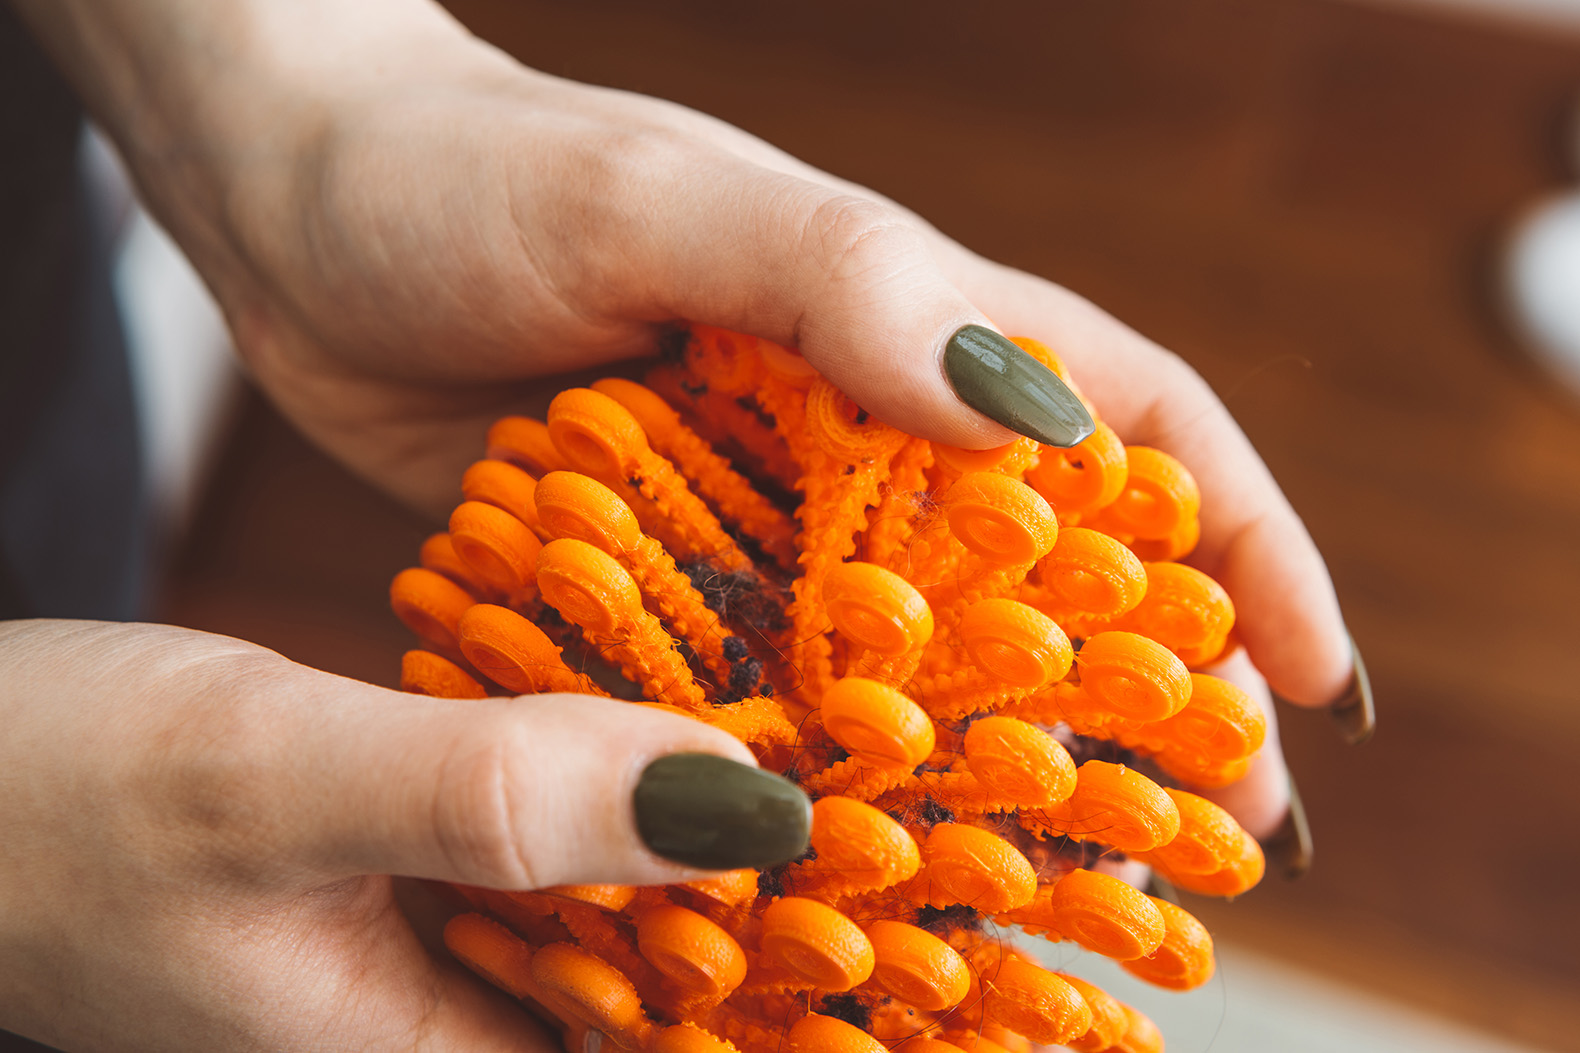 Cora Ball emulates natural filtering of coral to remove toxic microfibers from your washing machine